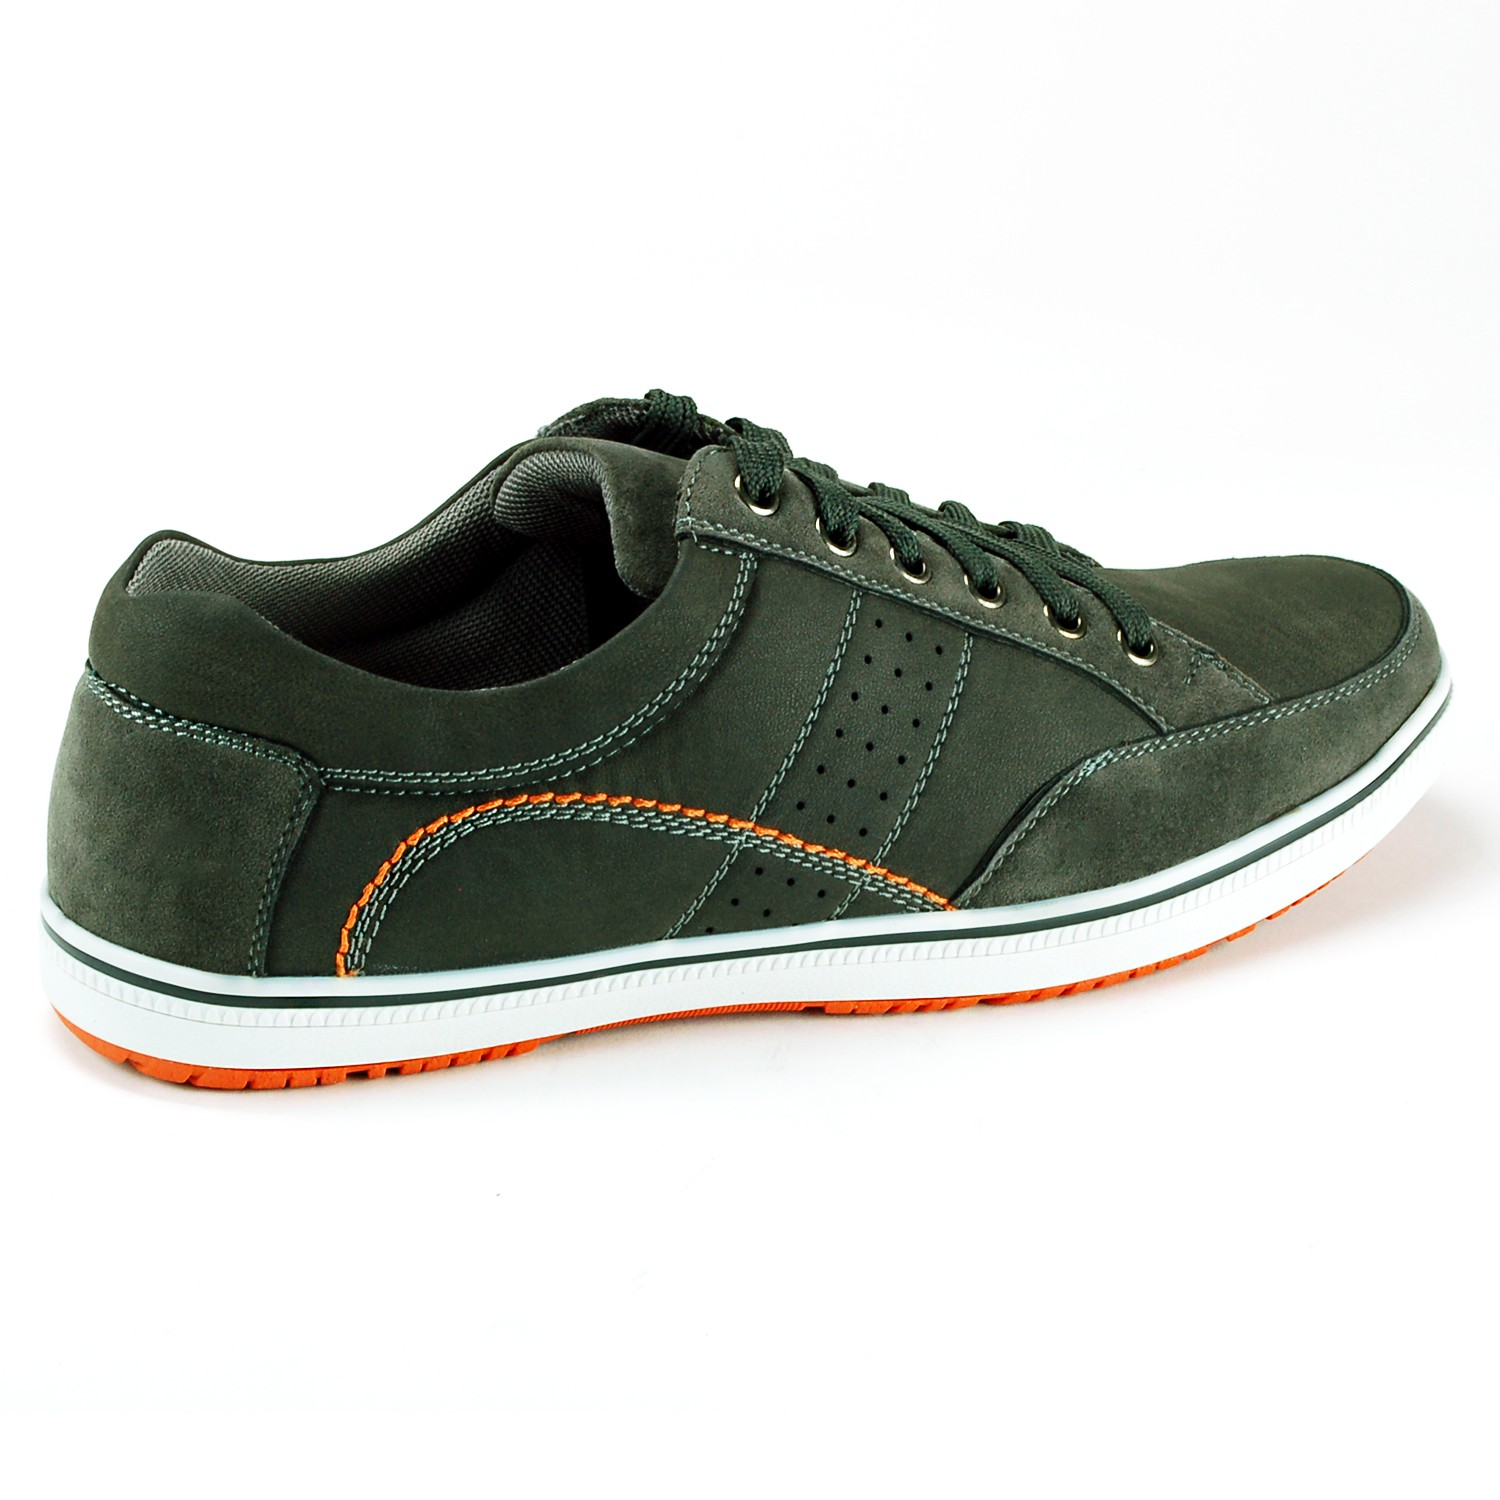 Menu0026#39;s Casual Fashion Sneakers Lace Up Low Top Skate Shoes Athletic Comfort New